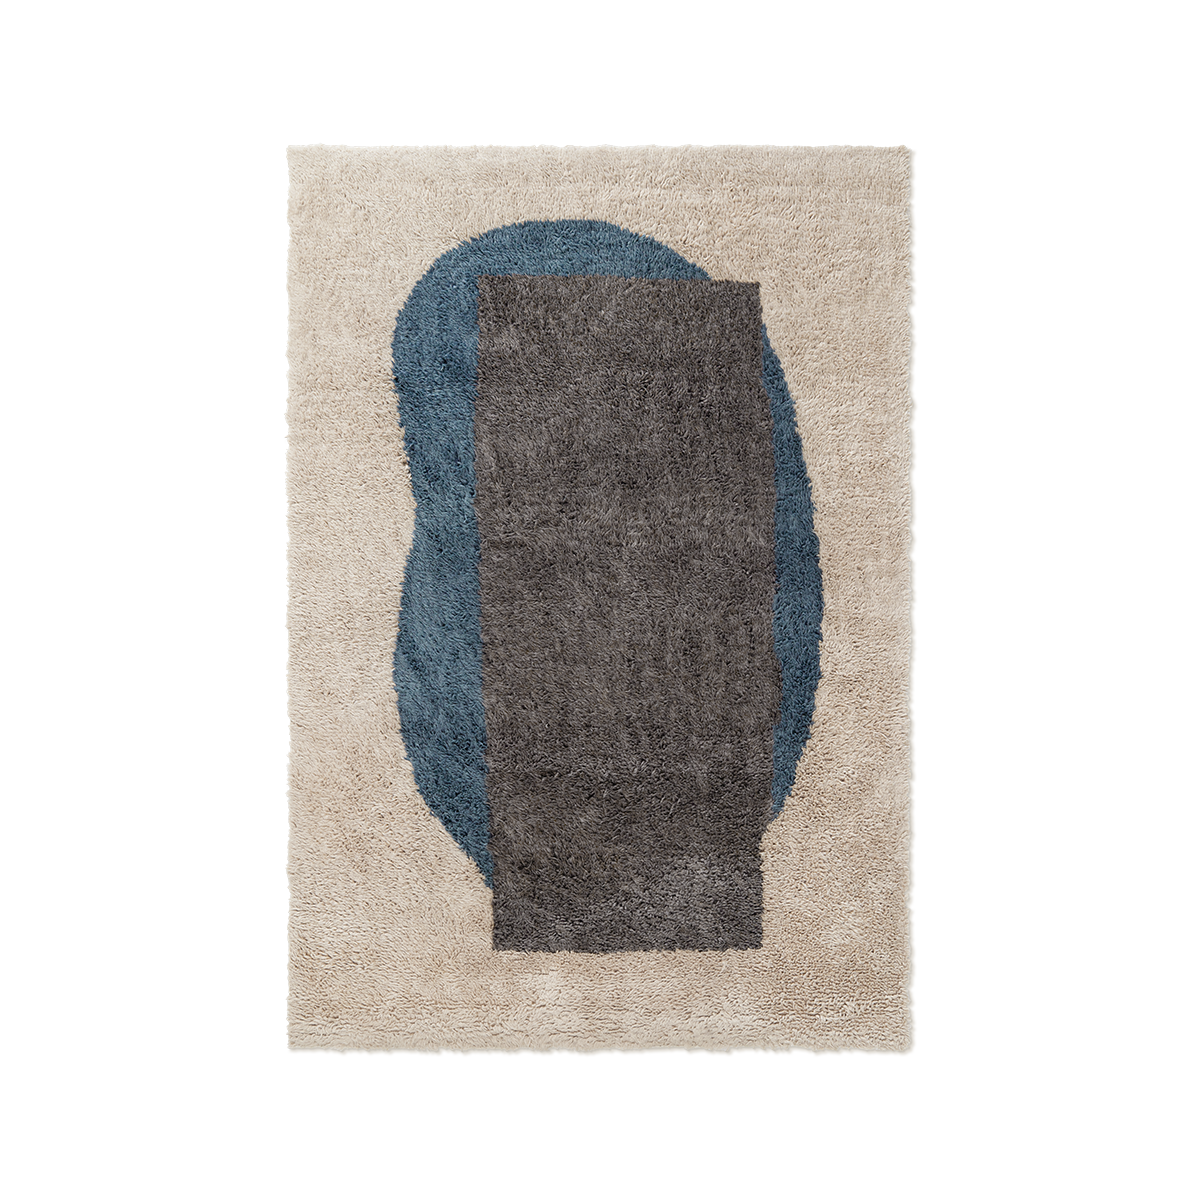 Product image of Monolith 2, a shaggy wool rug with an abstract pattern.